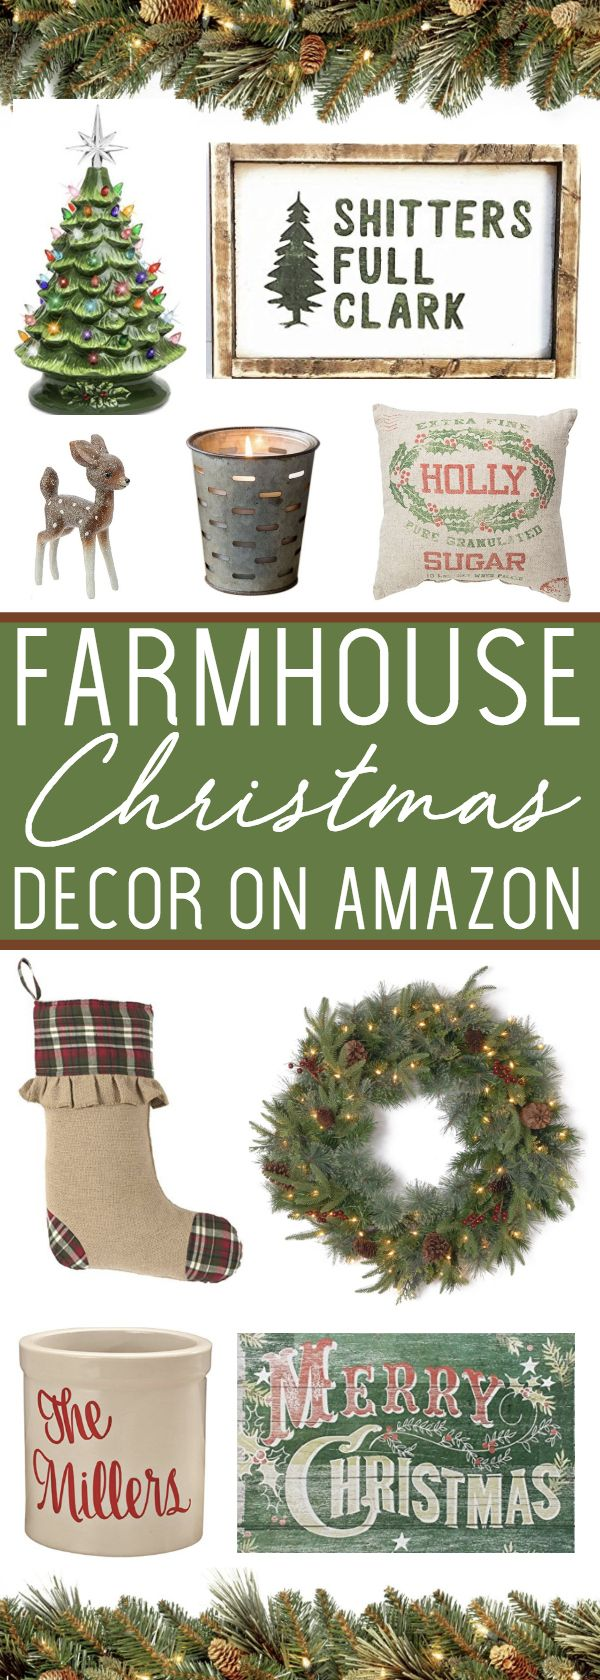 Farmhouse Christmas Decor on Amazon - these top picks are sure to bring holiday cheer to your home! #affiliate #ad